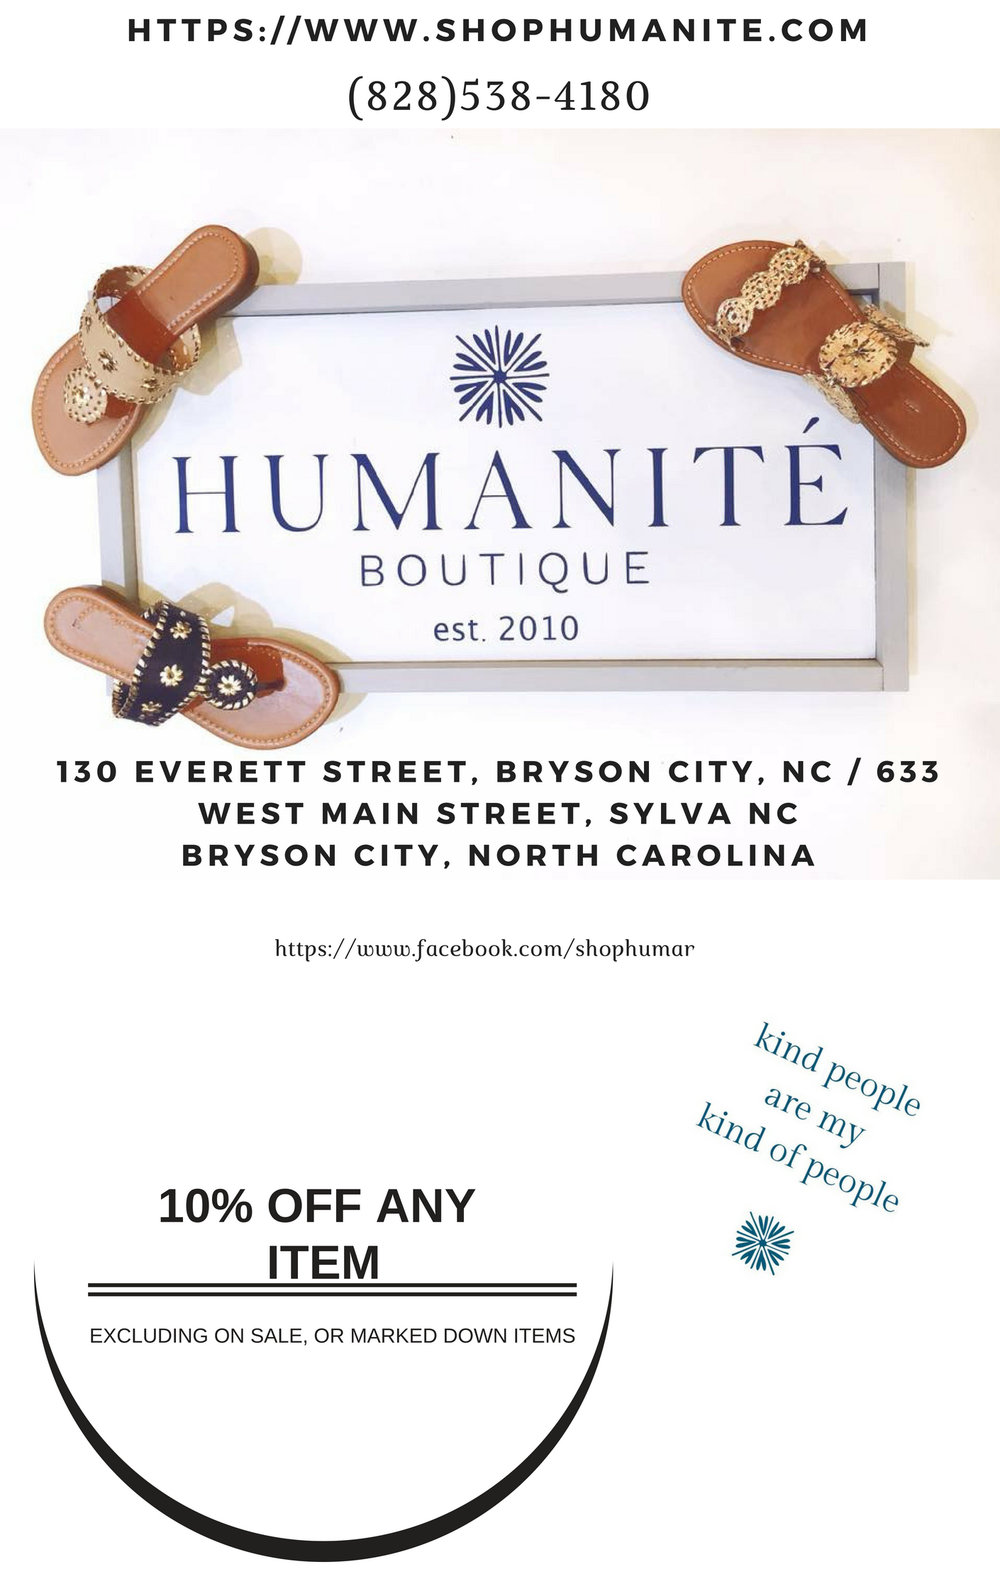 Humanite 10% OFF Any Single Item Purchase (Excluding marked down, or on sale)